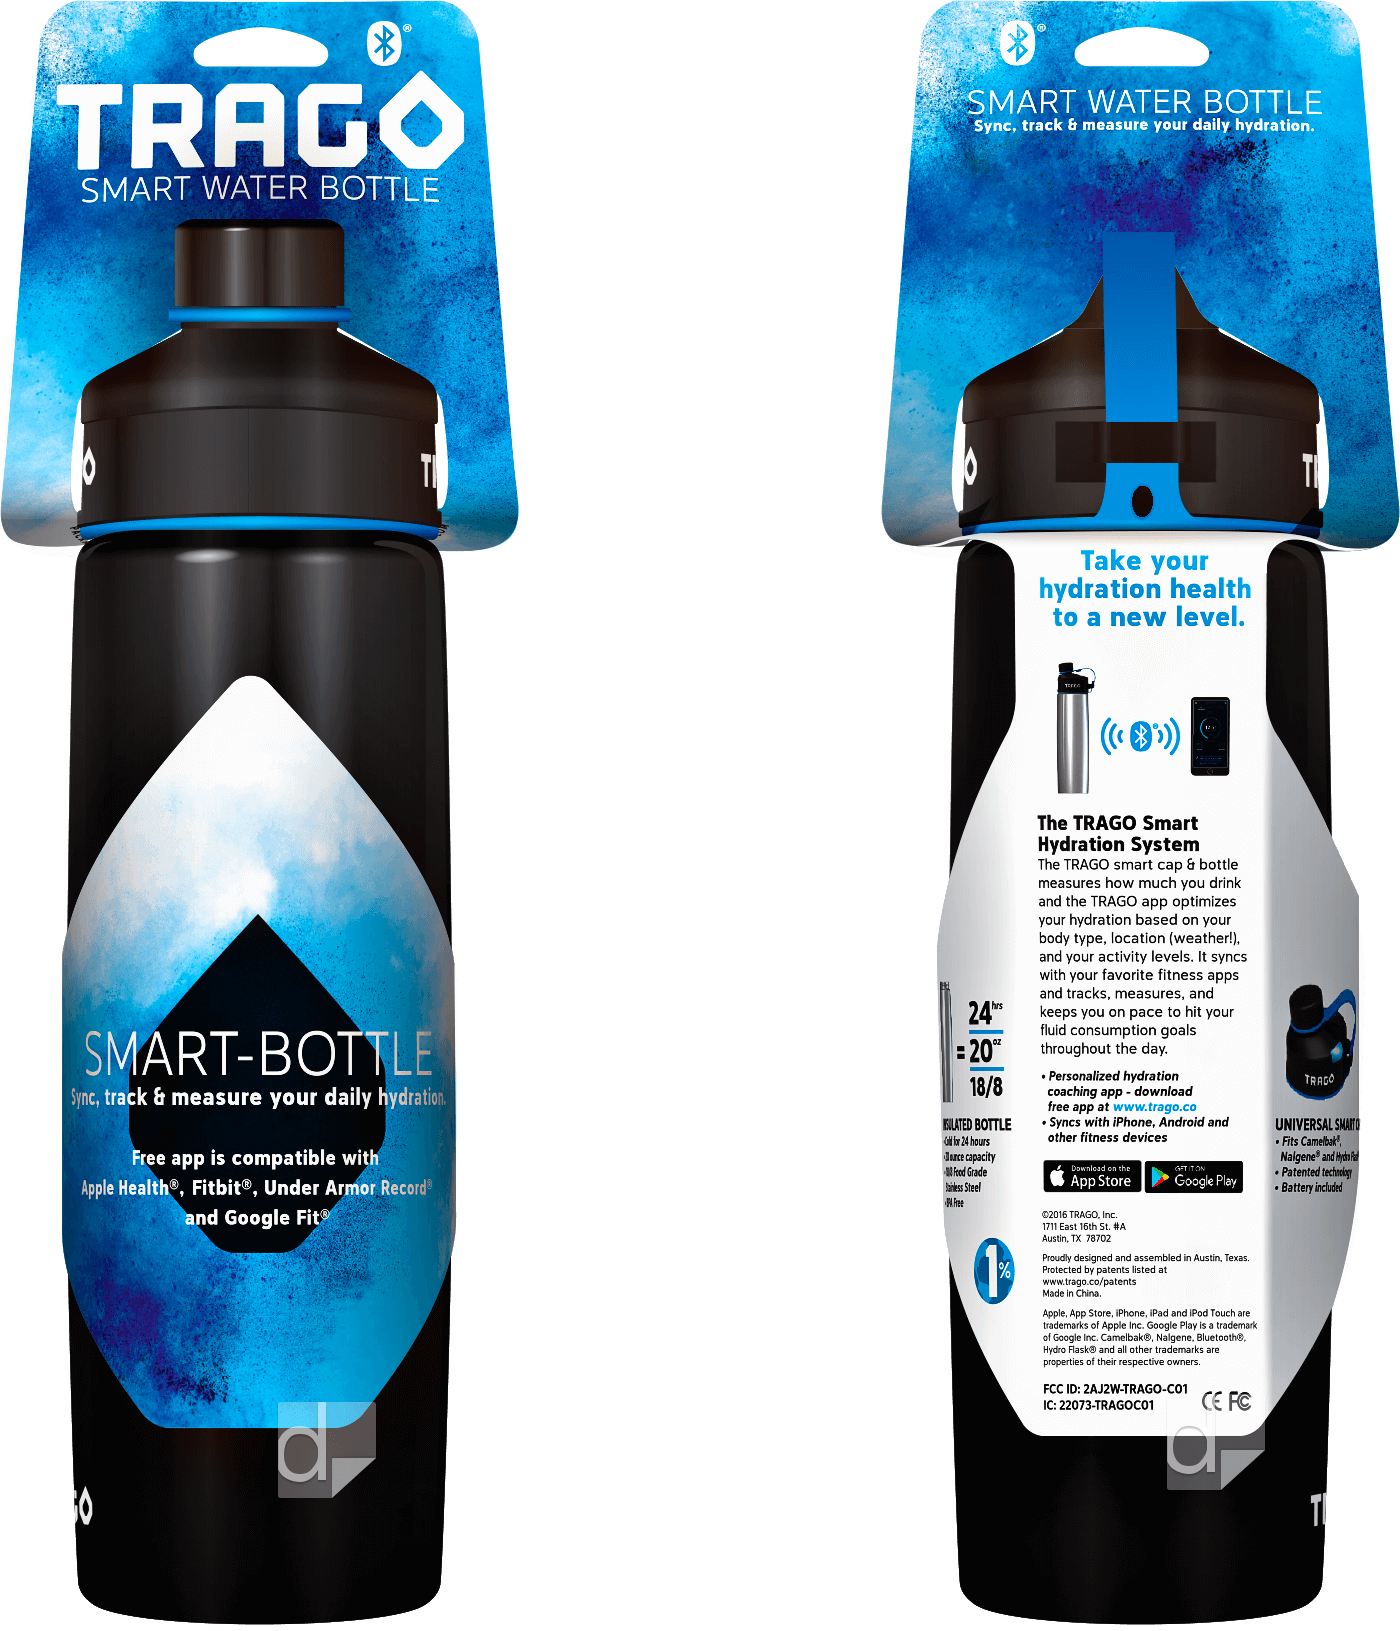 Double-Sided Custom Die Cut Bottle Necker Hang Tag Printing by Dilco for Trago Smart Water Bottle